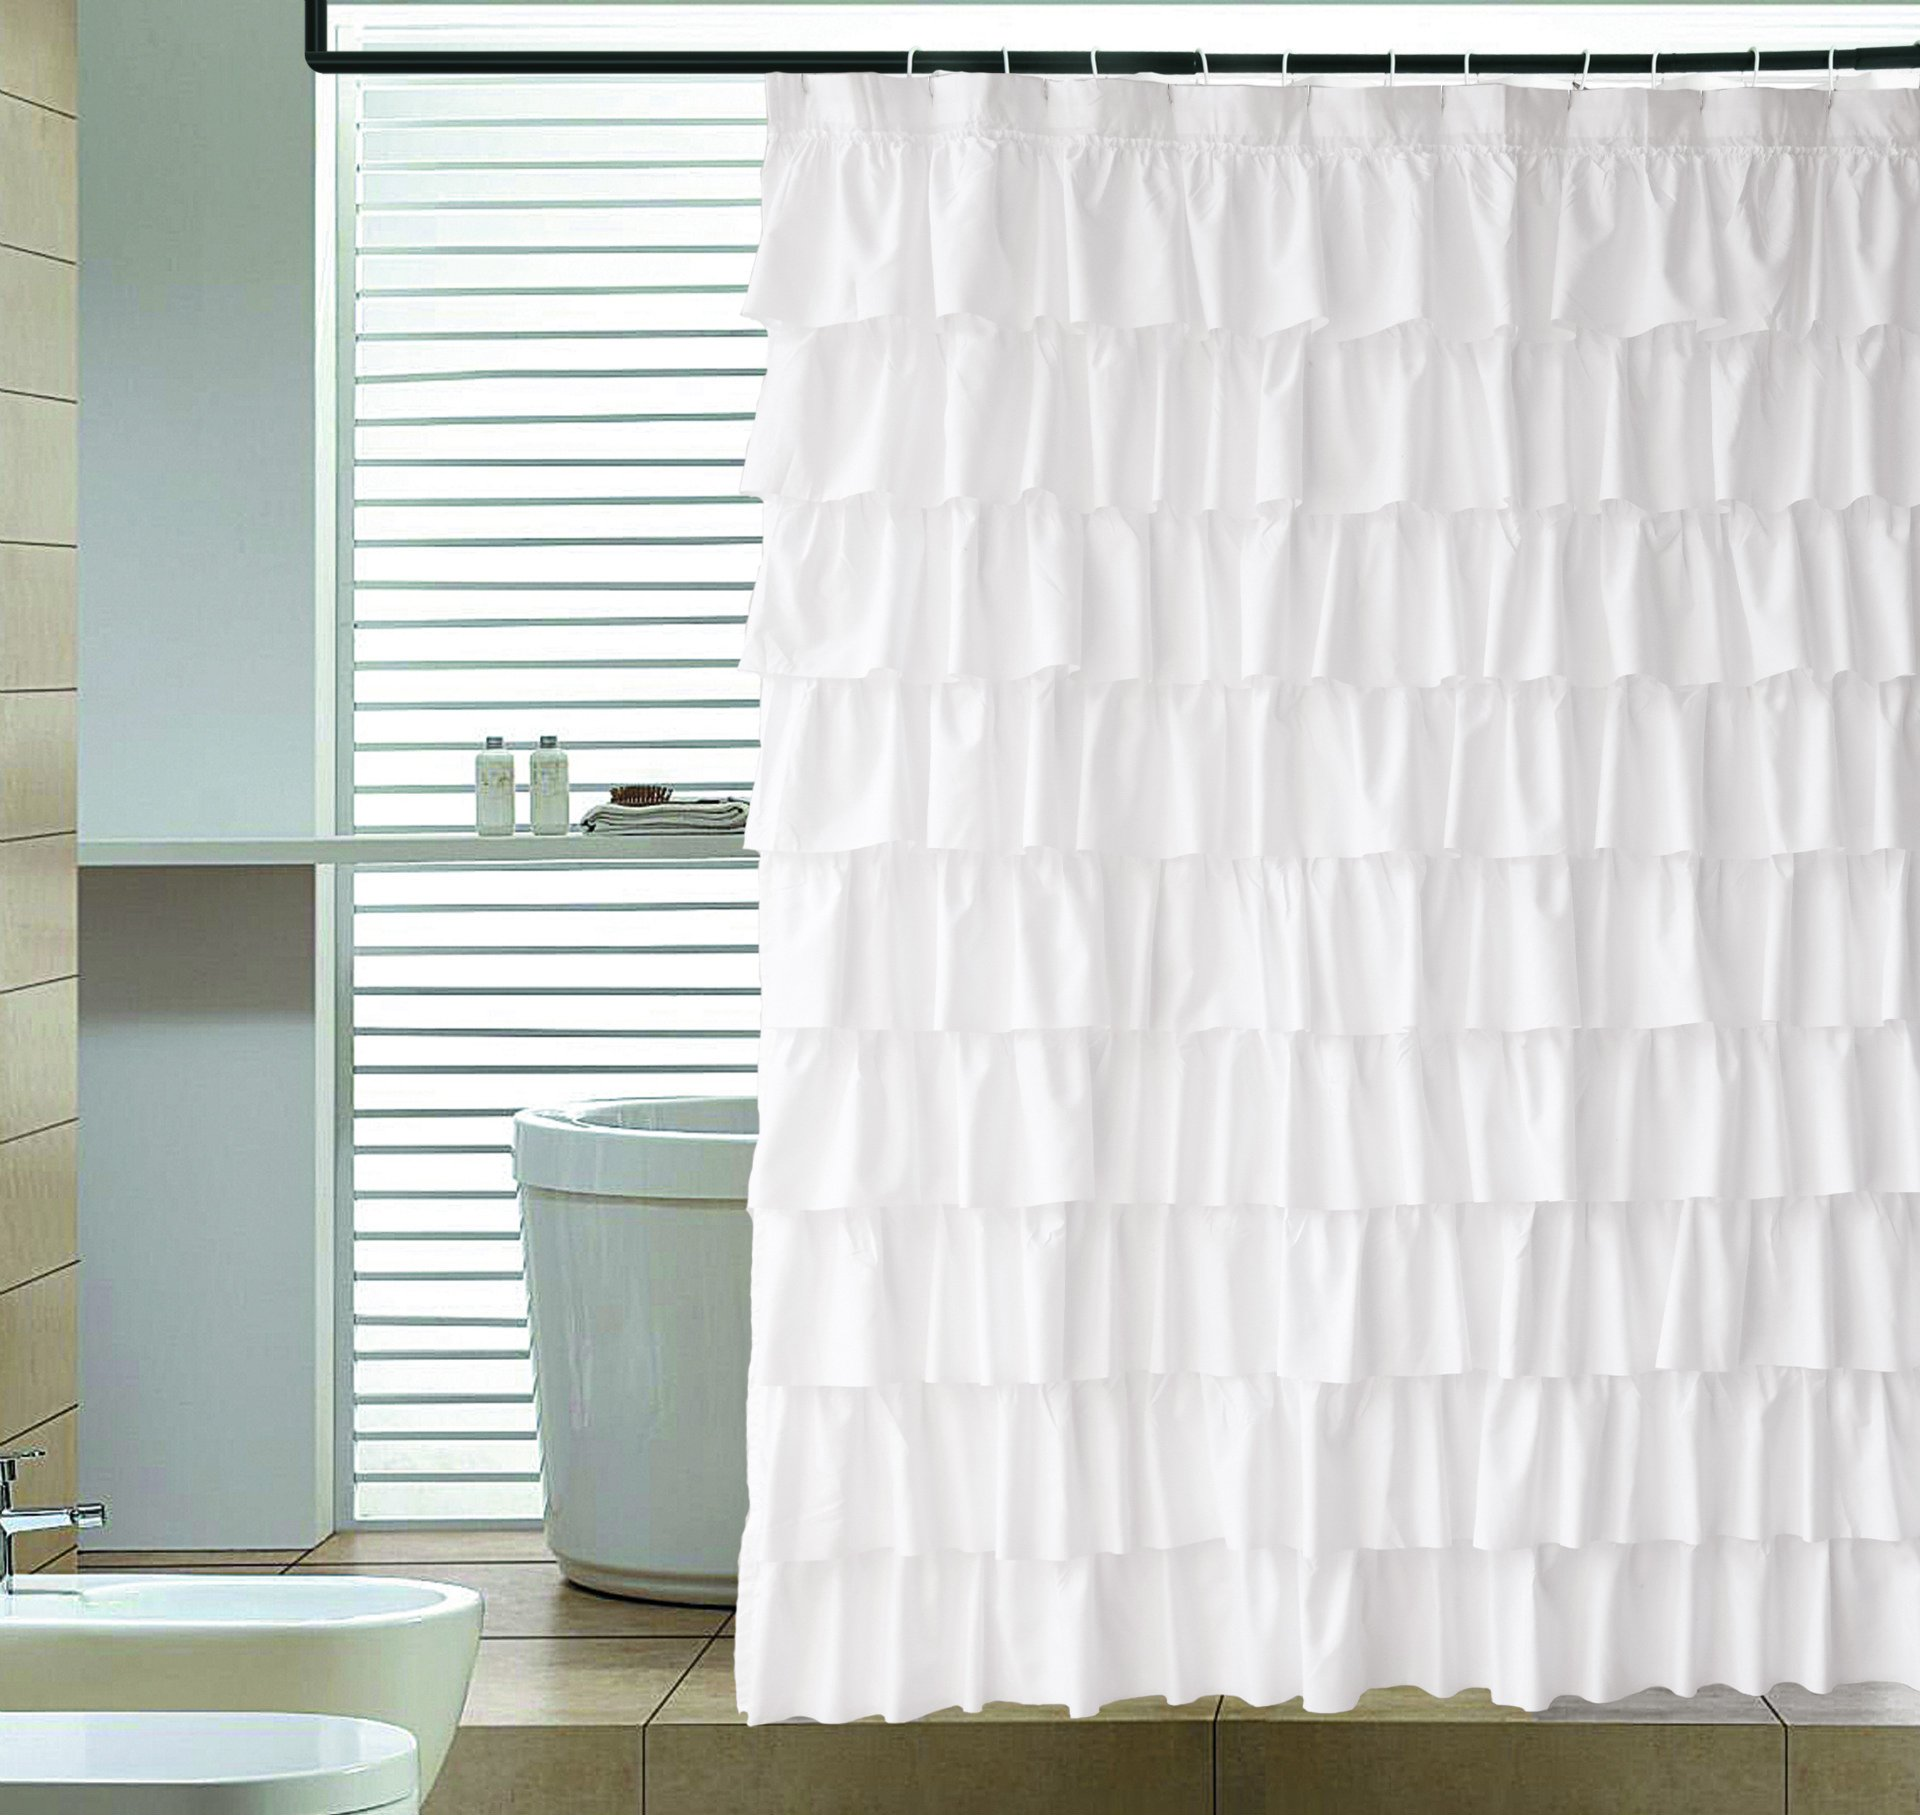 Ameritex Ruffle Shower Curtain Home Decor | Soft Polyester, Decorative Bathroom Accessories | Great for Showers & Bathtubs |White,72'' x 72'' by Ameritex